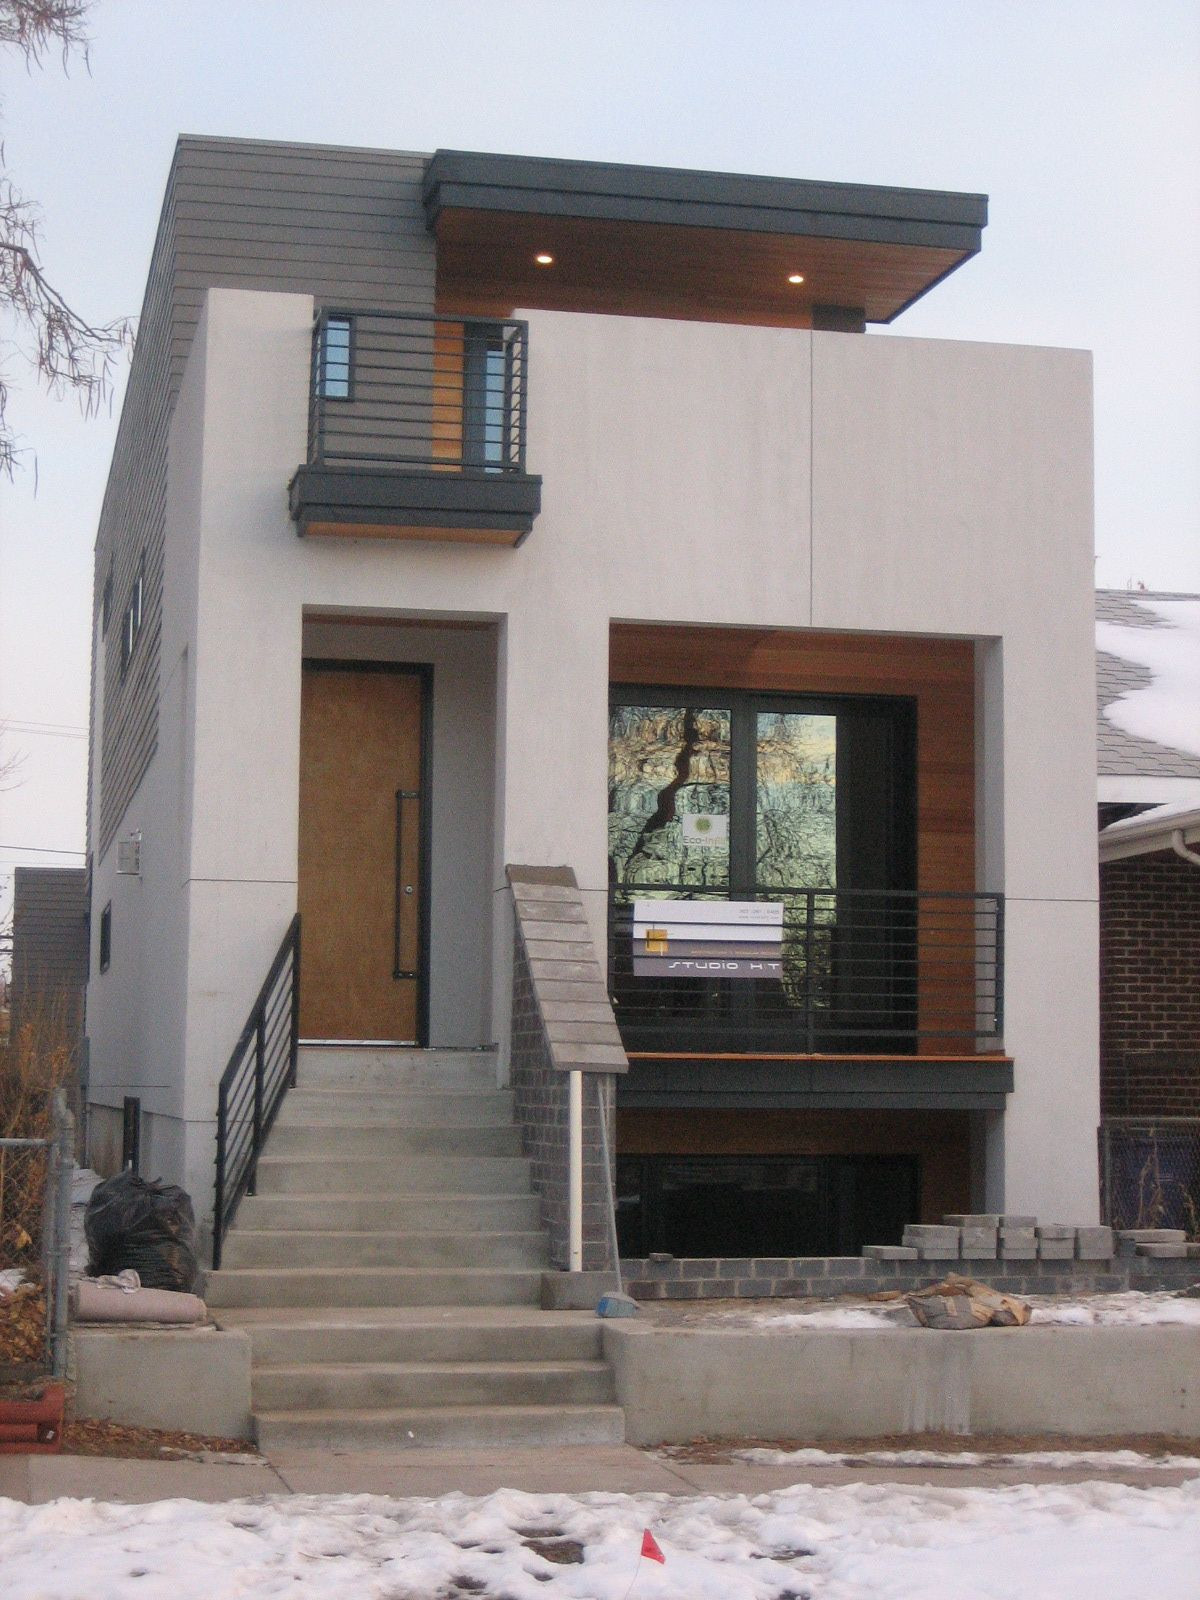 Best Small House Plans Residential Architecture Awesome Awesome Minimalist Prefabricated Small Houses with Stairs